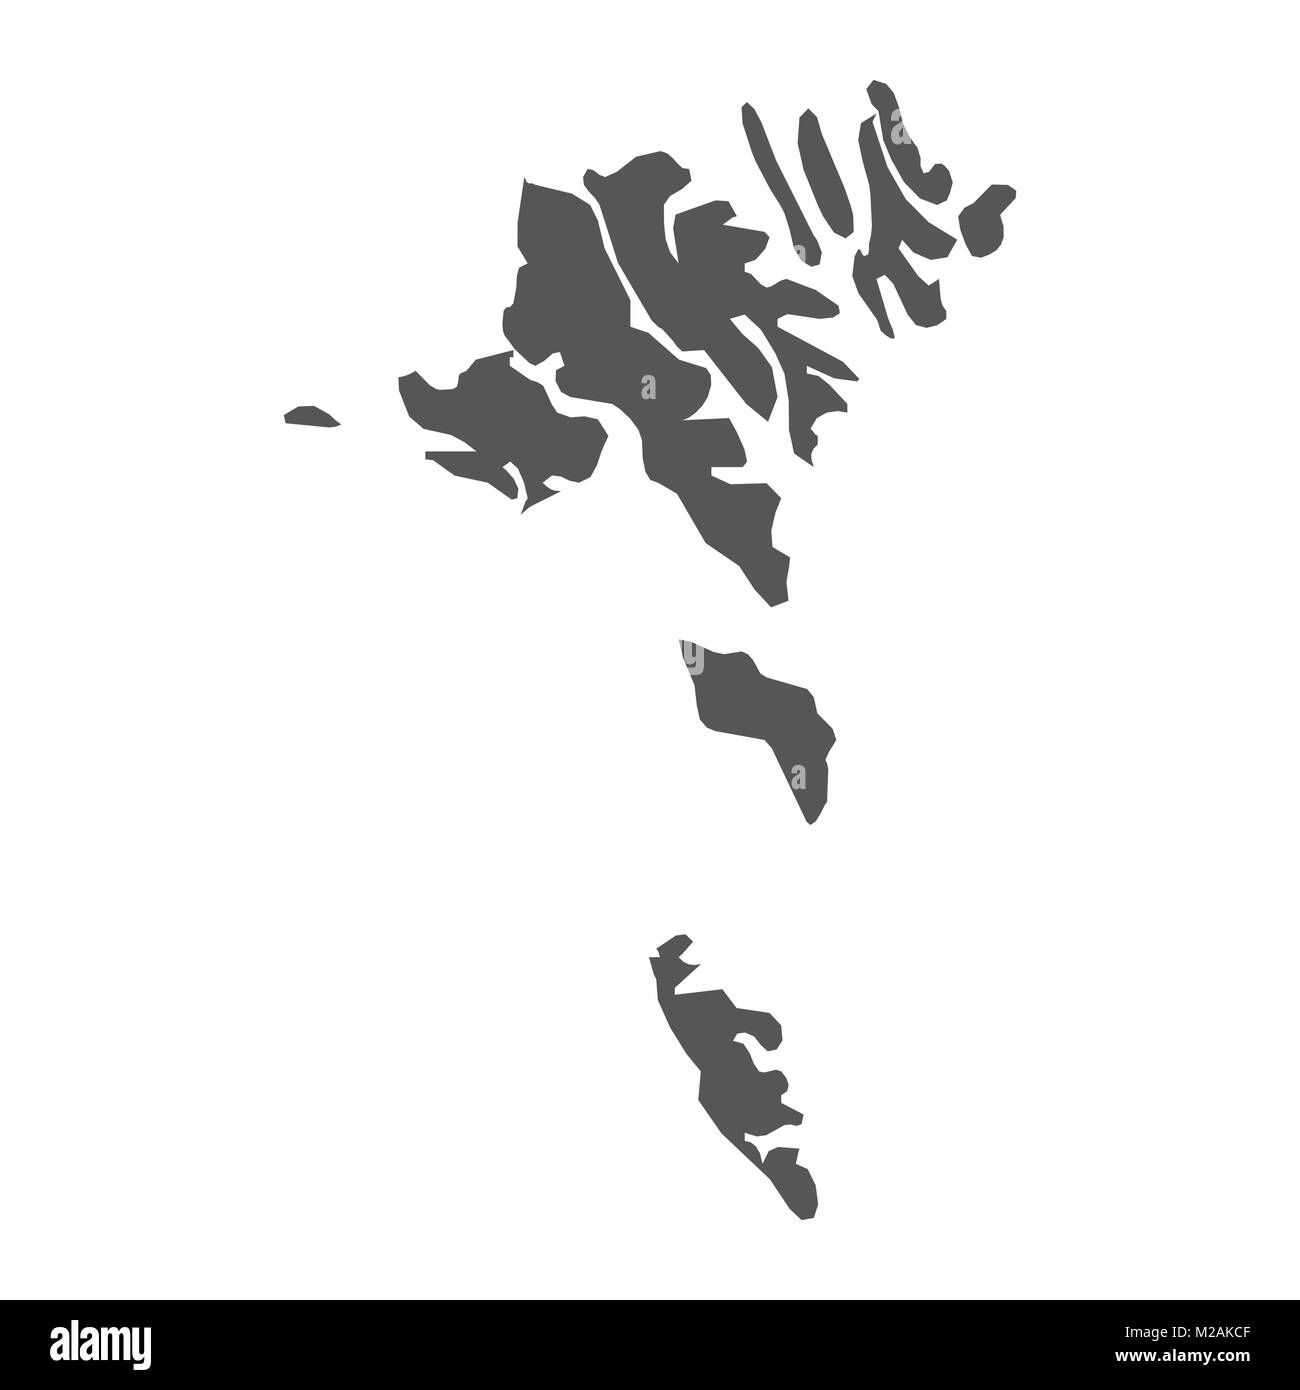 Faroe Islands vector map  Black icon on white background